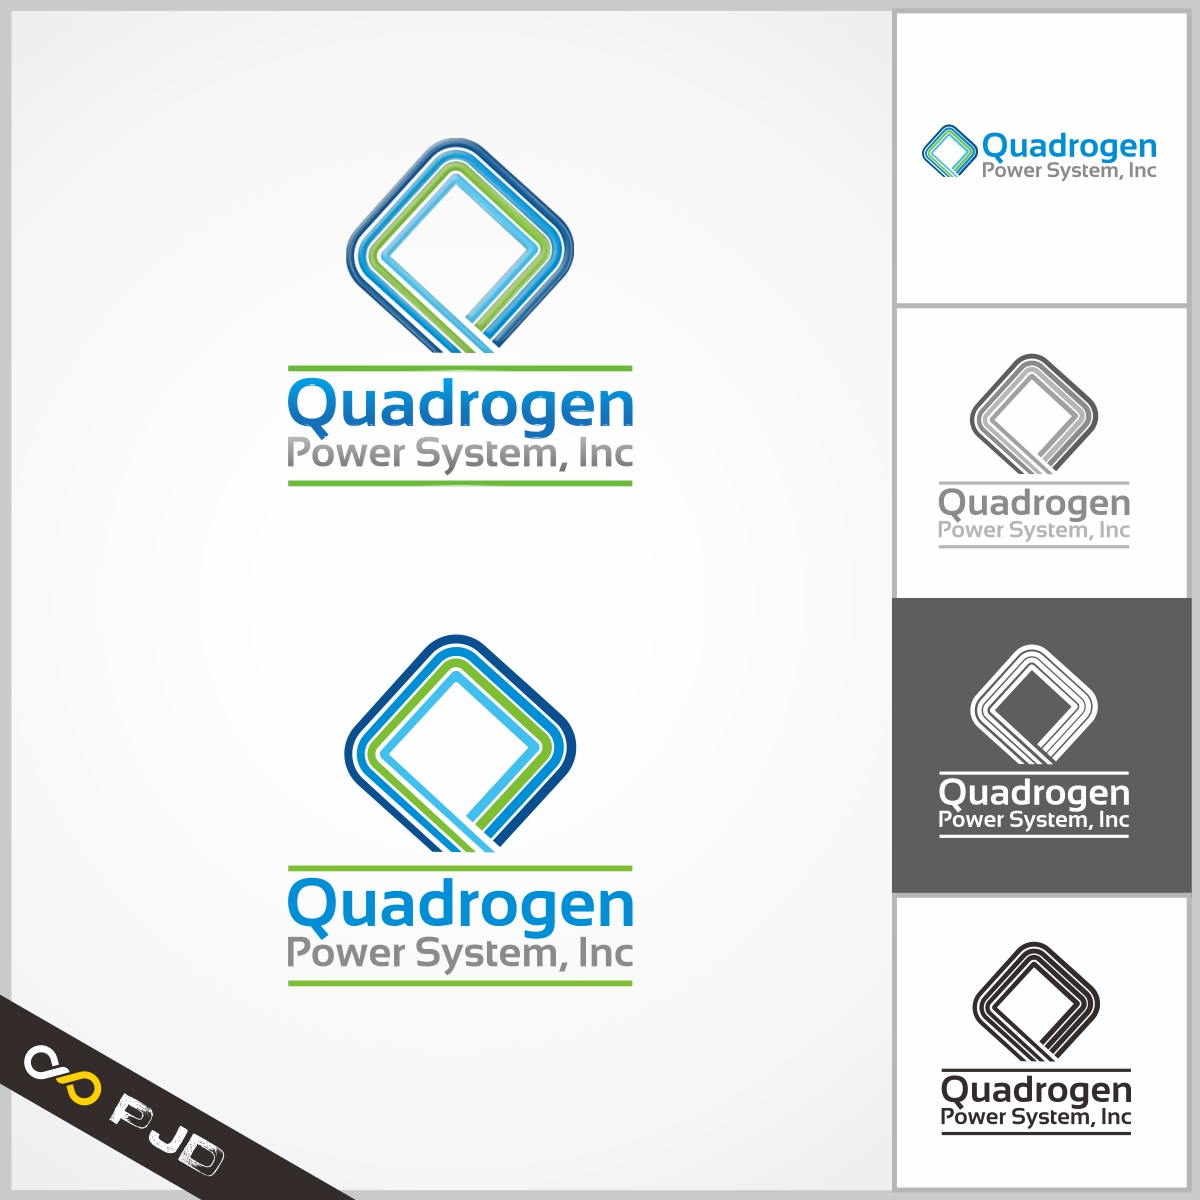 Logo Design by PJD - Entry No. 48 in the Logo Design Contest New Logo Design for Quadrogen Power Systems, Inc.